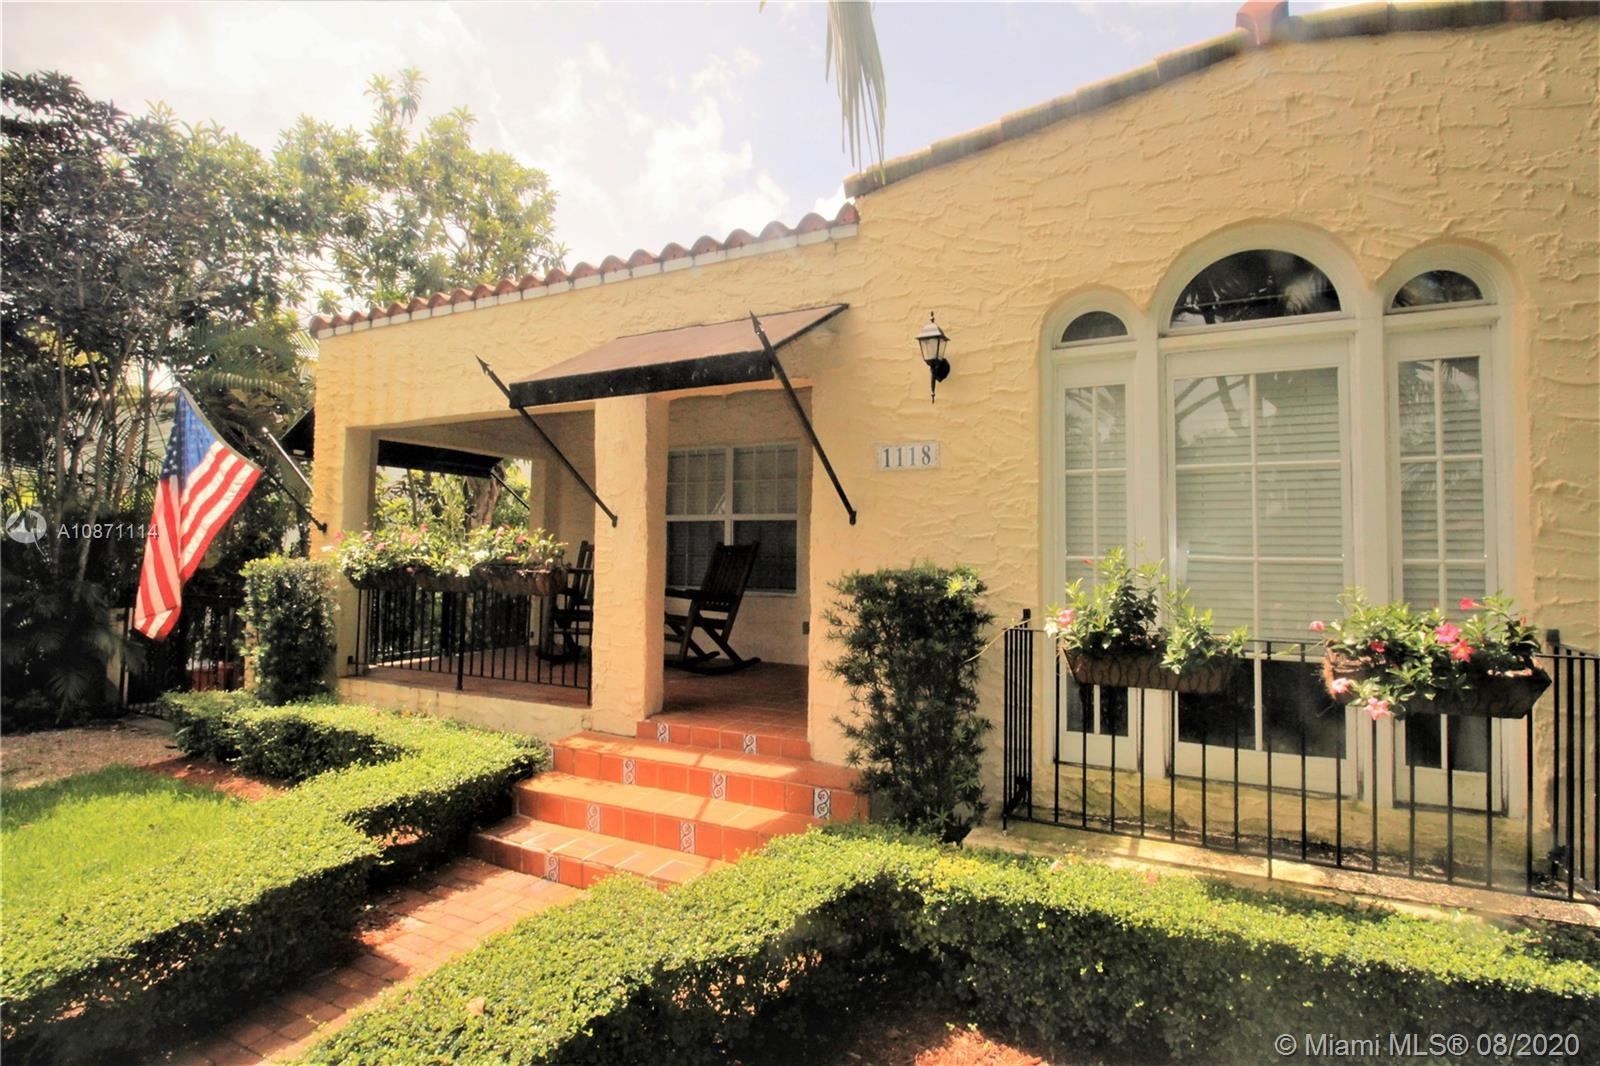 1118 Milan Ave, Coral Gables, Florida 33134, 2 Bedrooms Bedrooms, ,1 BathroomBathrooms,Residential,For Sale,1118 Milan Ave,A10871114